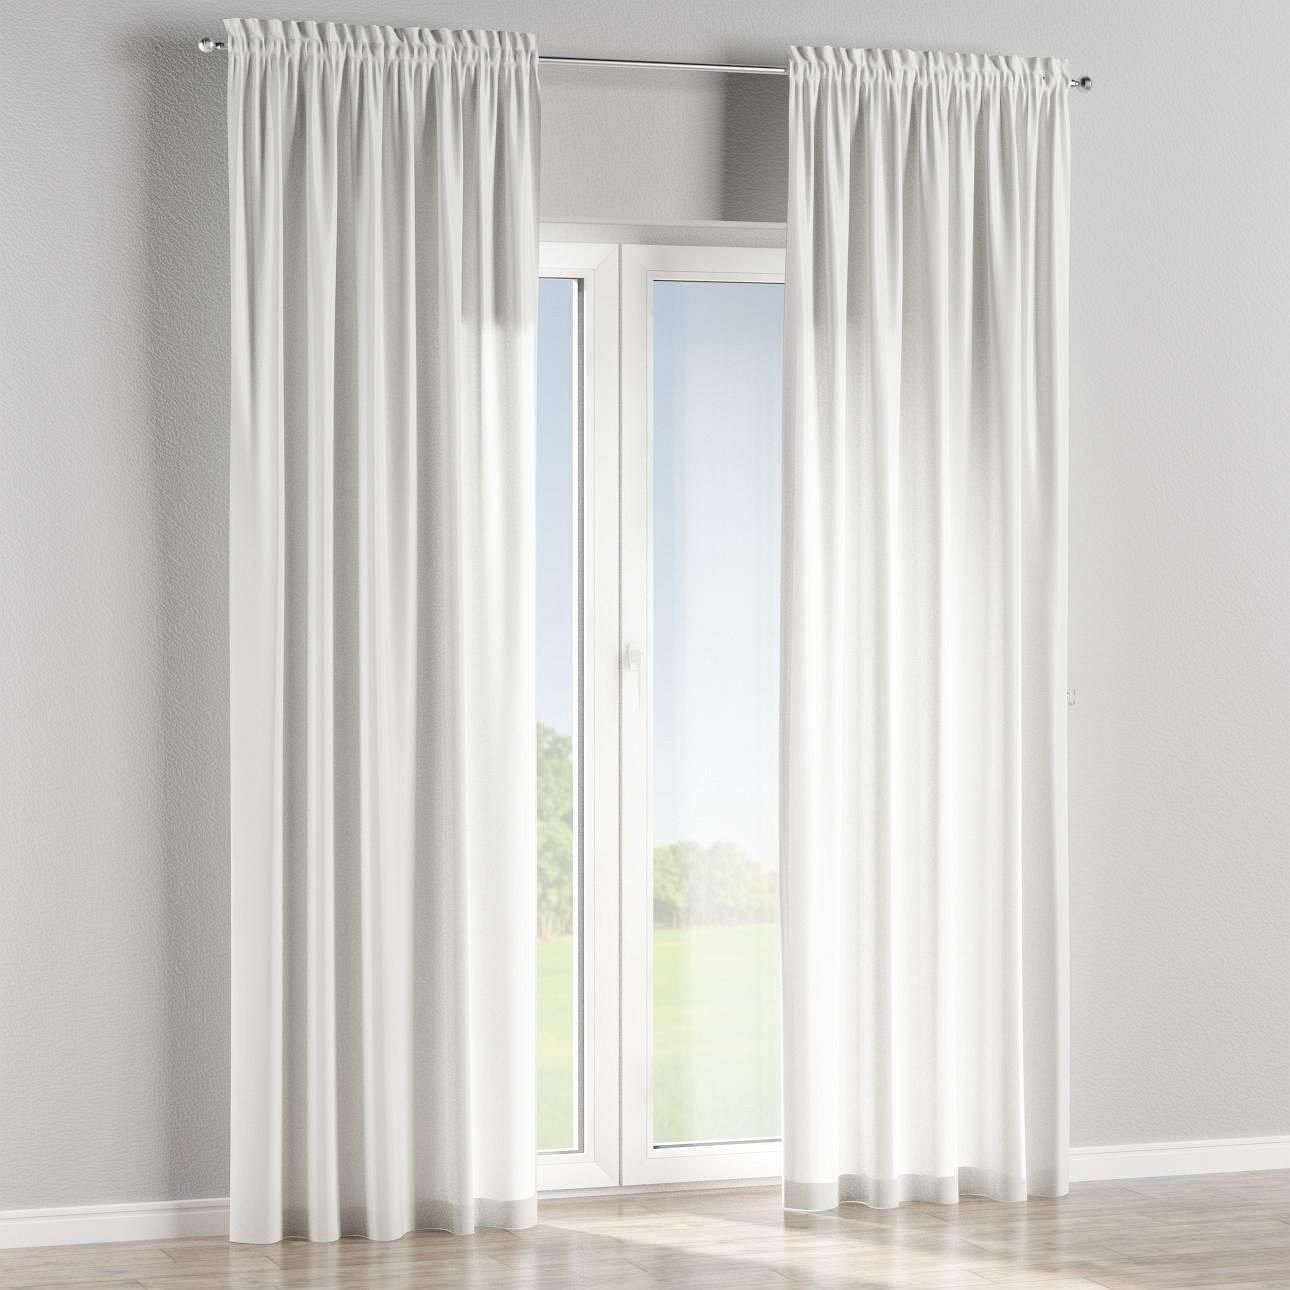 Slot and frill curtains in collection Rustica, fabric: 138-16